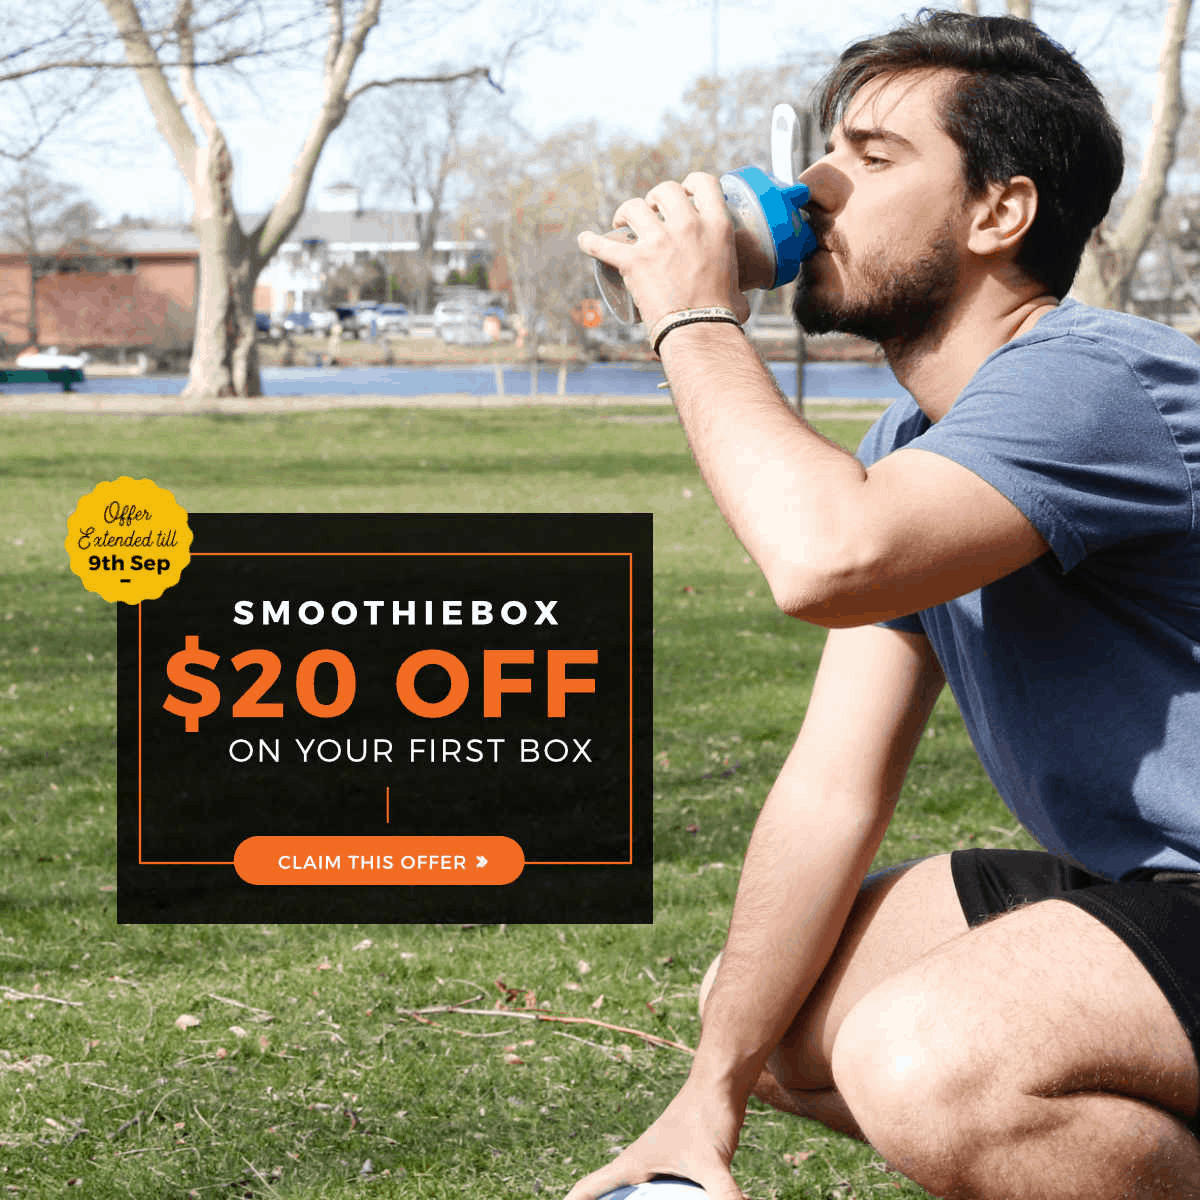 SmoothieBox Sale: Get $20 Off – EXTENDED!